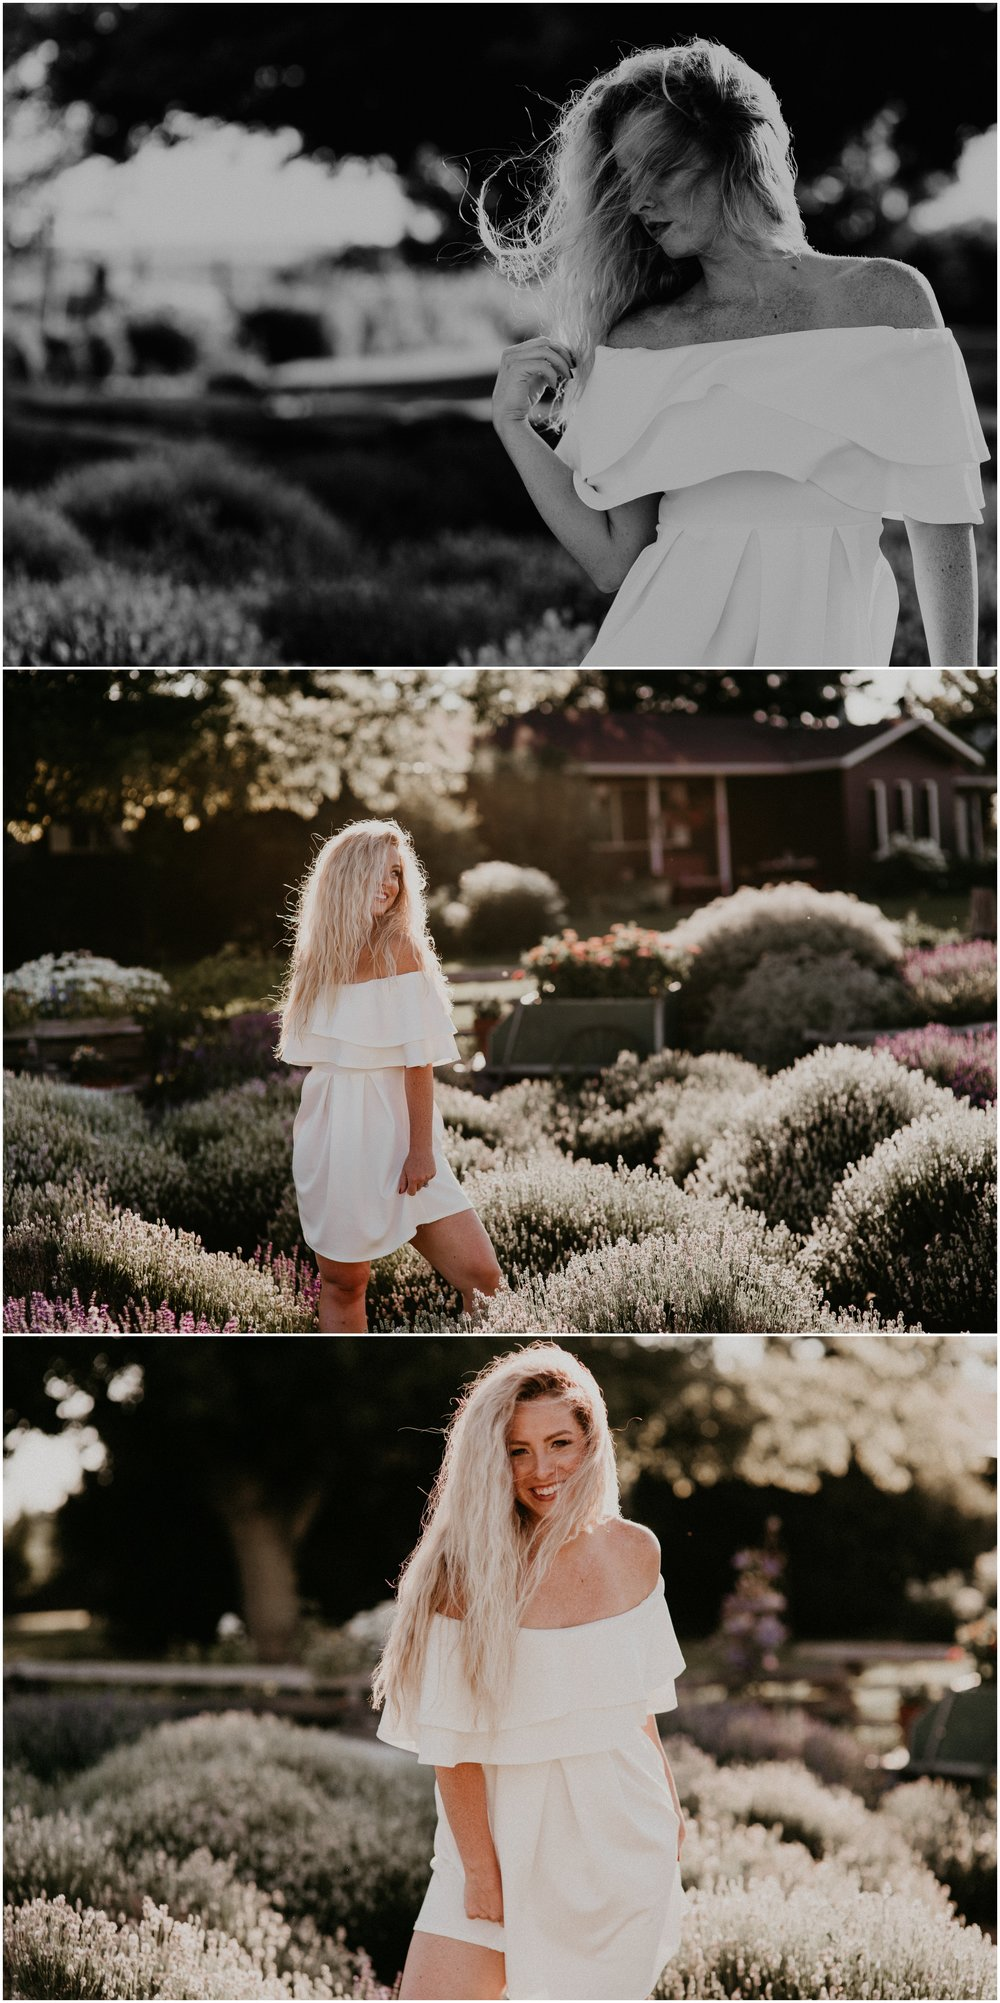 Makayla Madden Photography Boise Idaho Senior Boudoir Wedding Photographer Kuna Idaho Lavender Field Merchant Portrait Session Dreamy Golden Hour Kuna